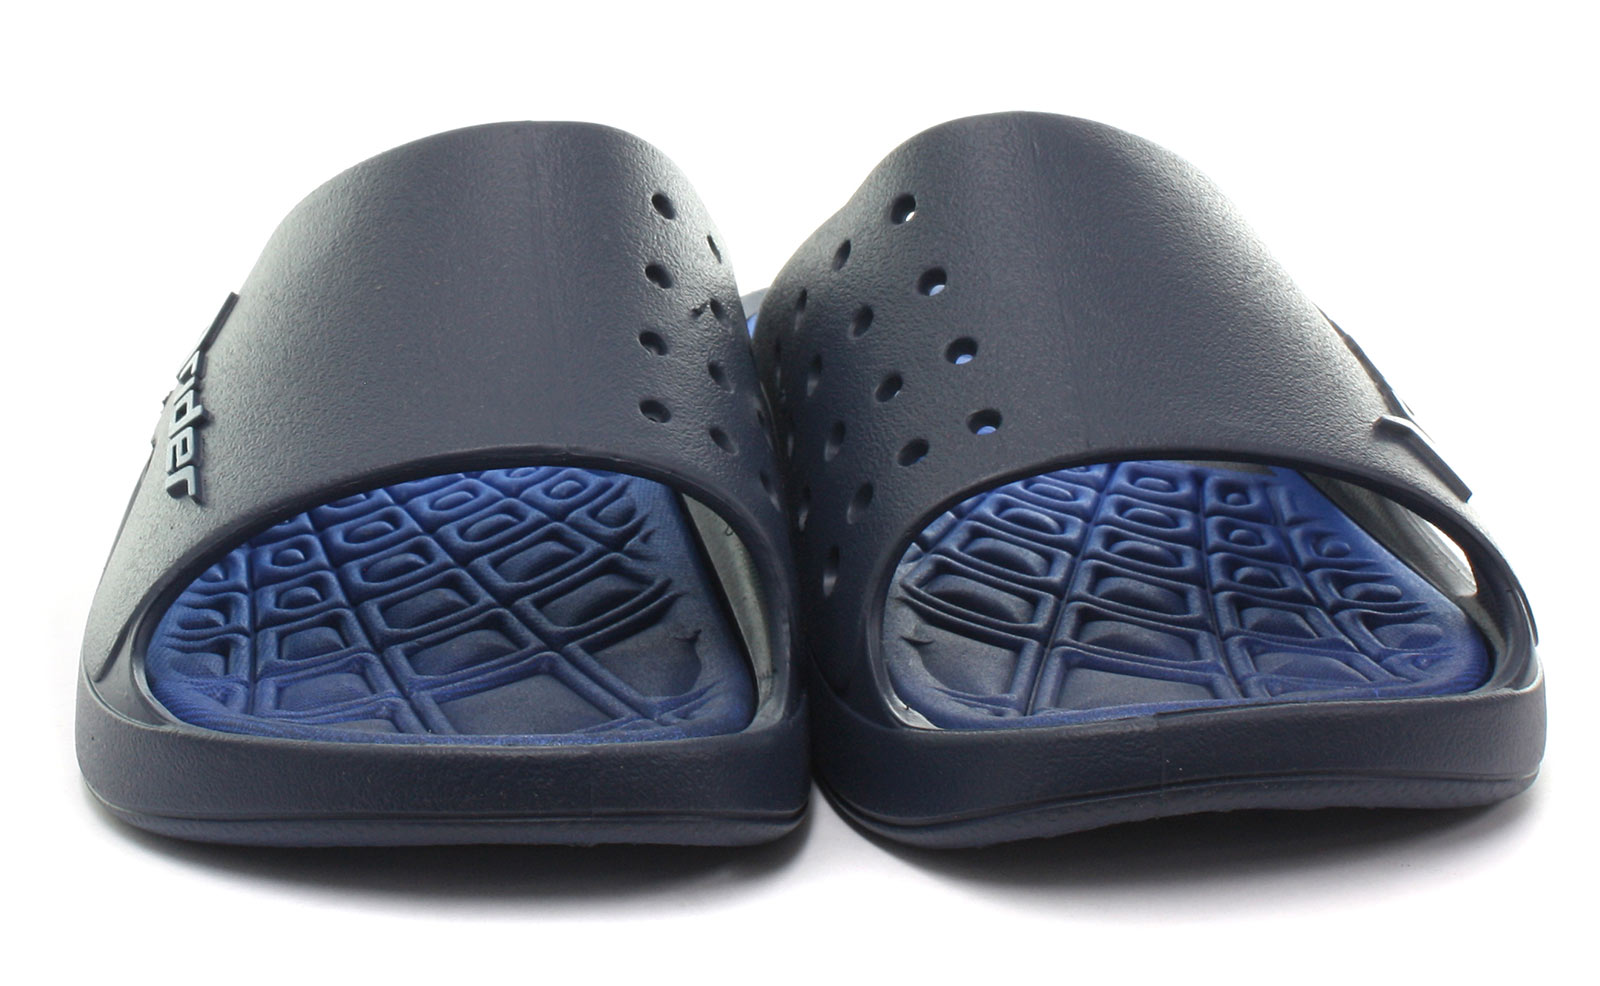 New-Rider-Brasil-Bay-VI-Navy-Mens-Slide-Sandals-Size-UK-9-EU-43